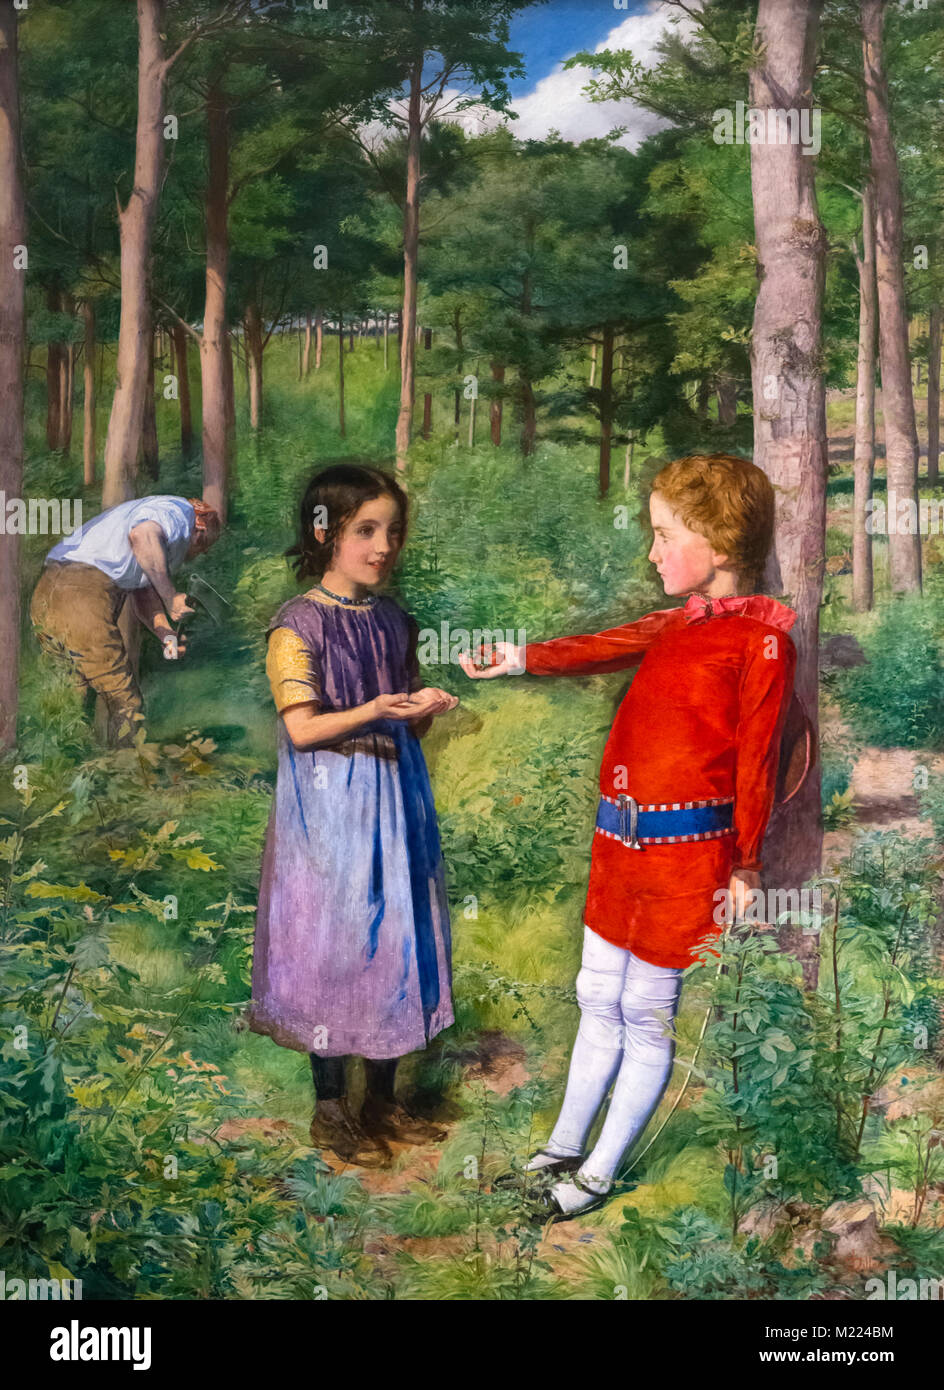 The Woodman's Daughter by John Everett Millais (1829-1896), oil on canvas, 1851 - Stock Image